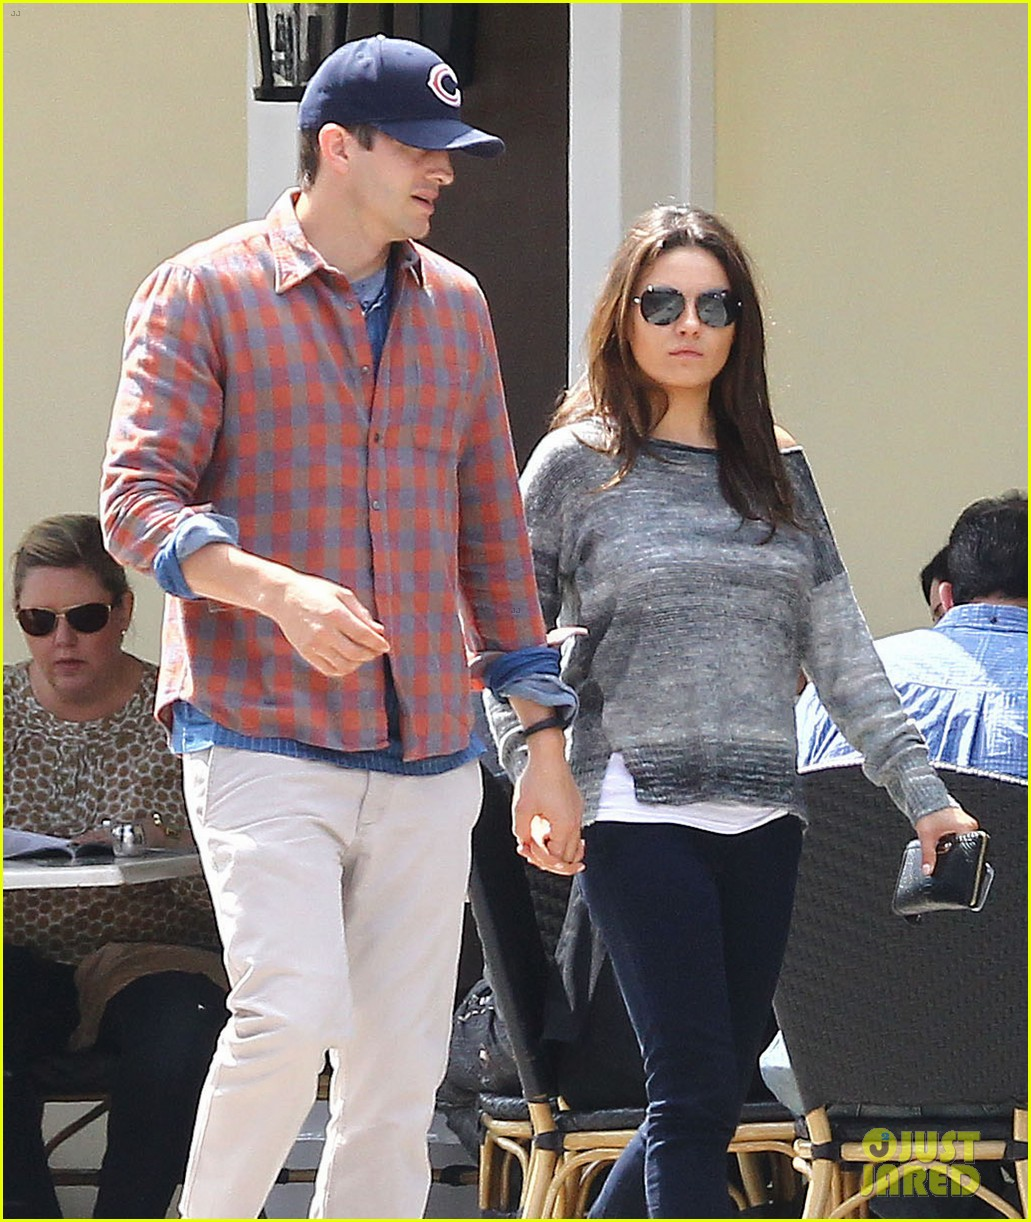 New rumors: Ashton Kutcher and Mila Kunis got married 01/06/2015 80